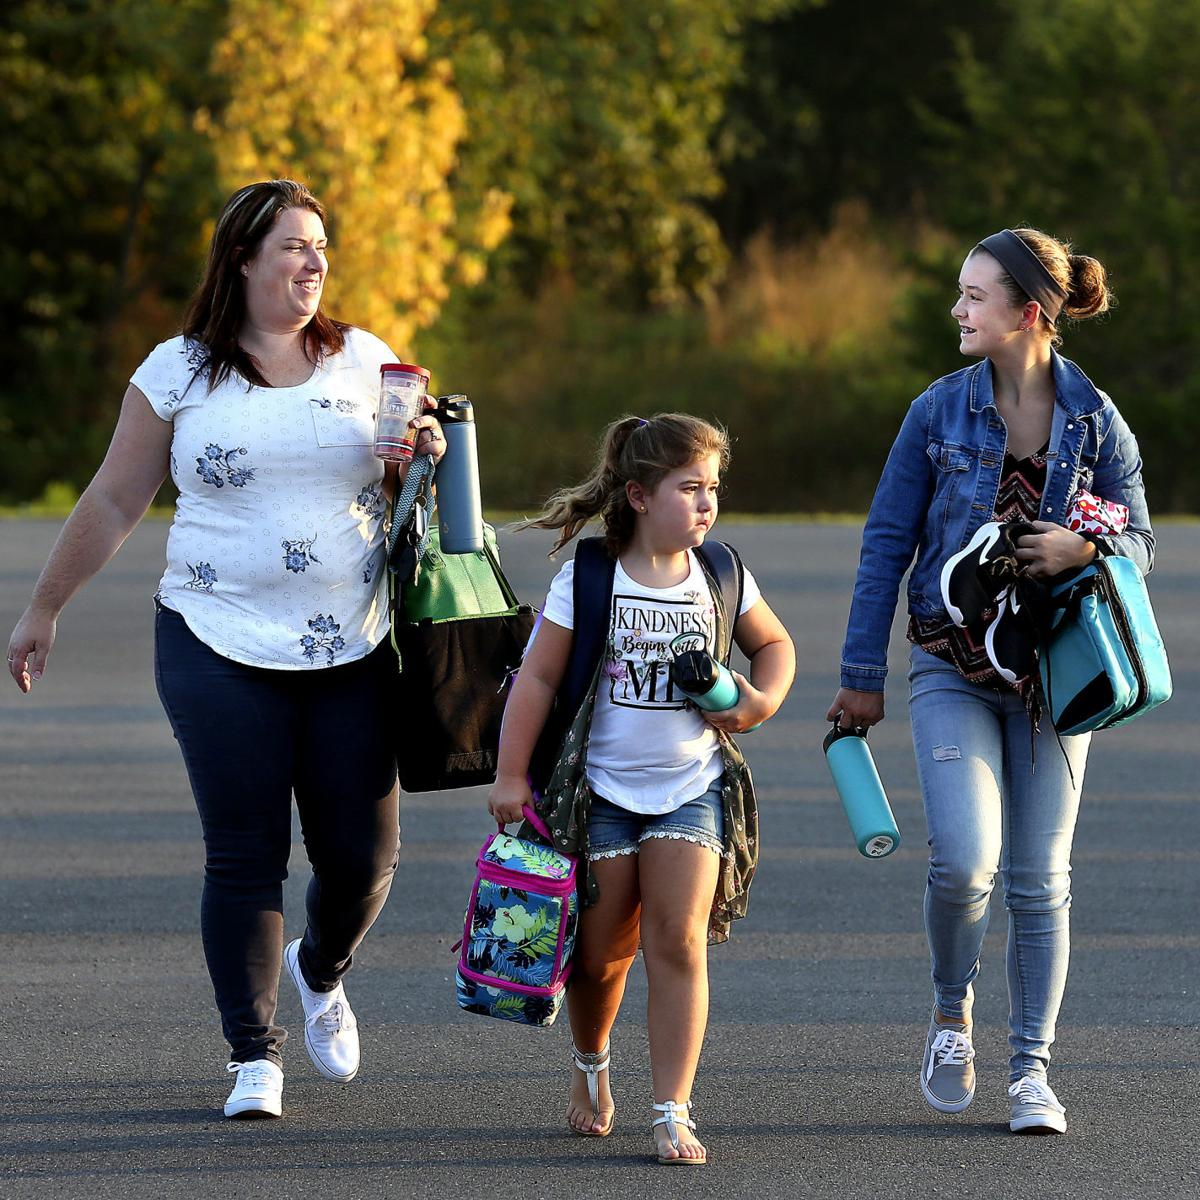 Frederick schools have record-setting 1st day attendance for 3rd year in a row